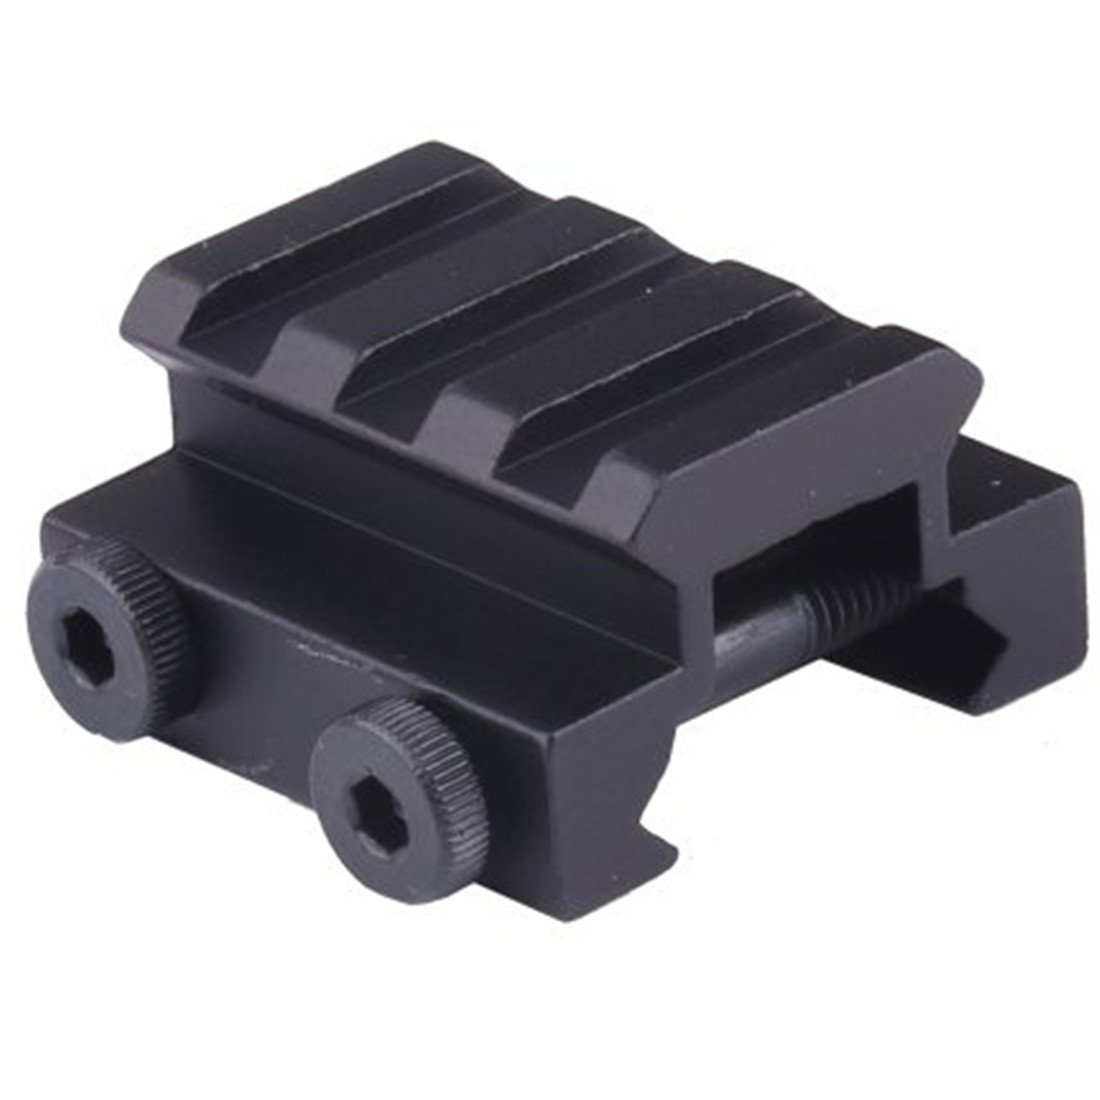 1/2 Pulgada 3 Slot Low Riser 20mm Teclado Picatinny Rifle Base/Scope Mount Rail FIRE WOLF